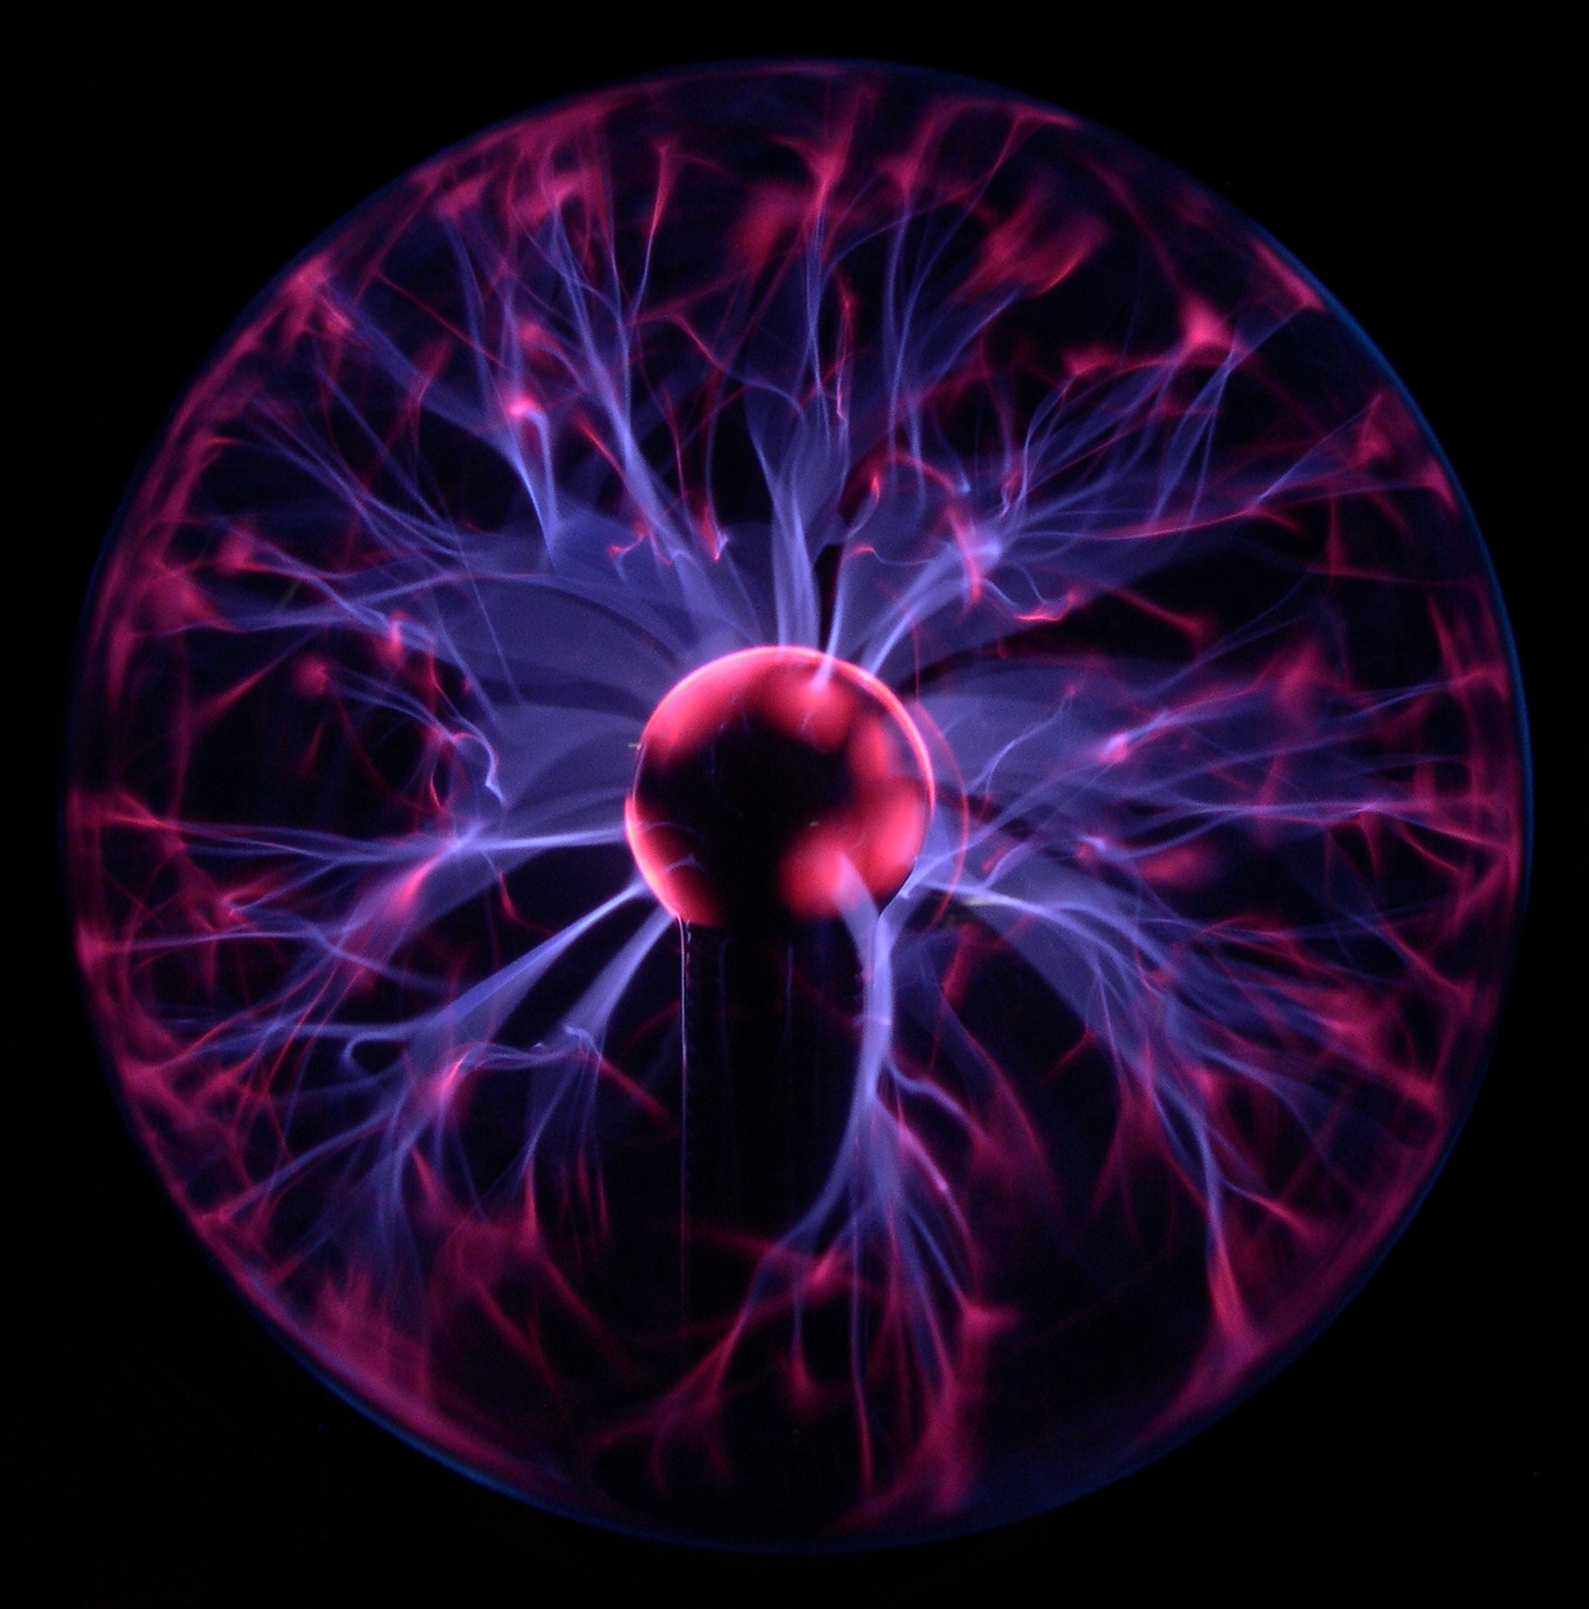 File:Plasma-lamp 2.jpg - Wikimedia Commons for Plasma Lamp Gif  181pct